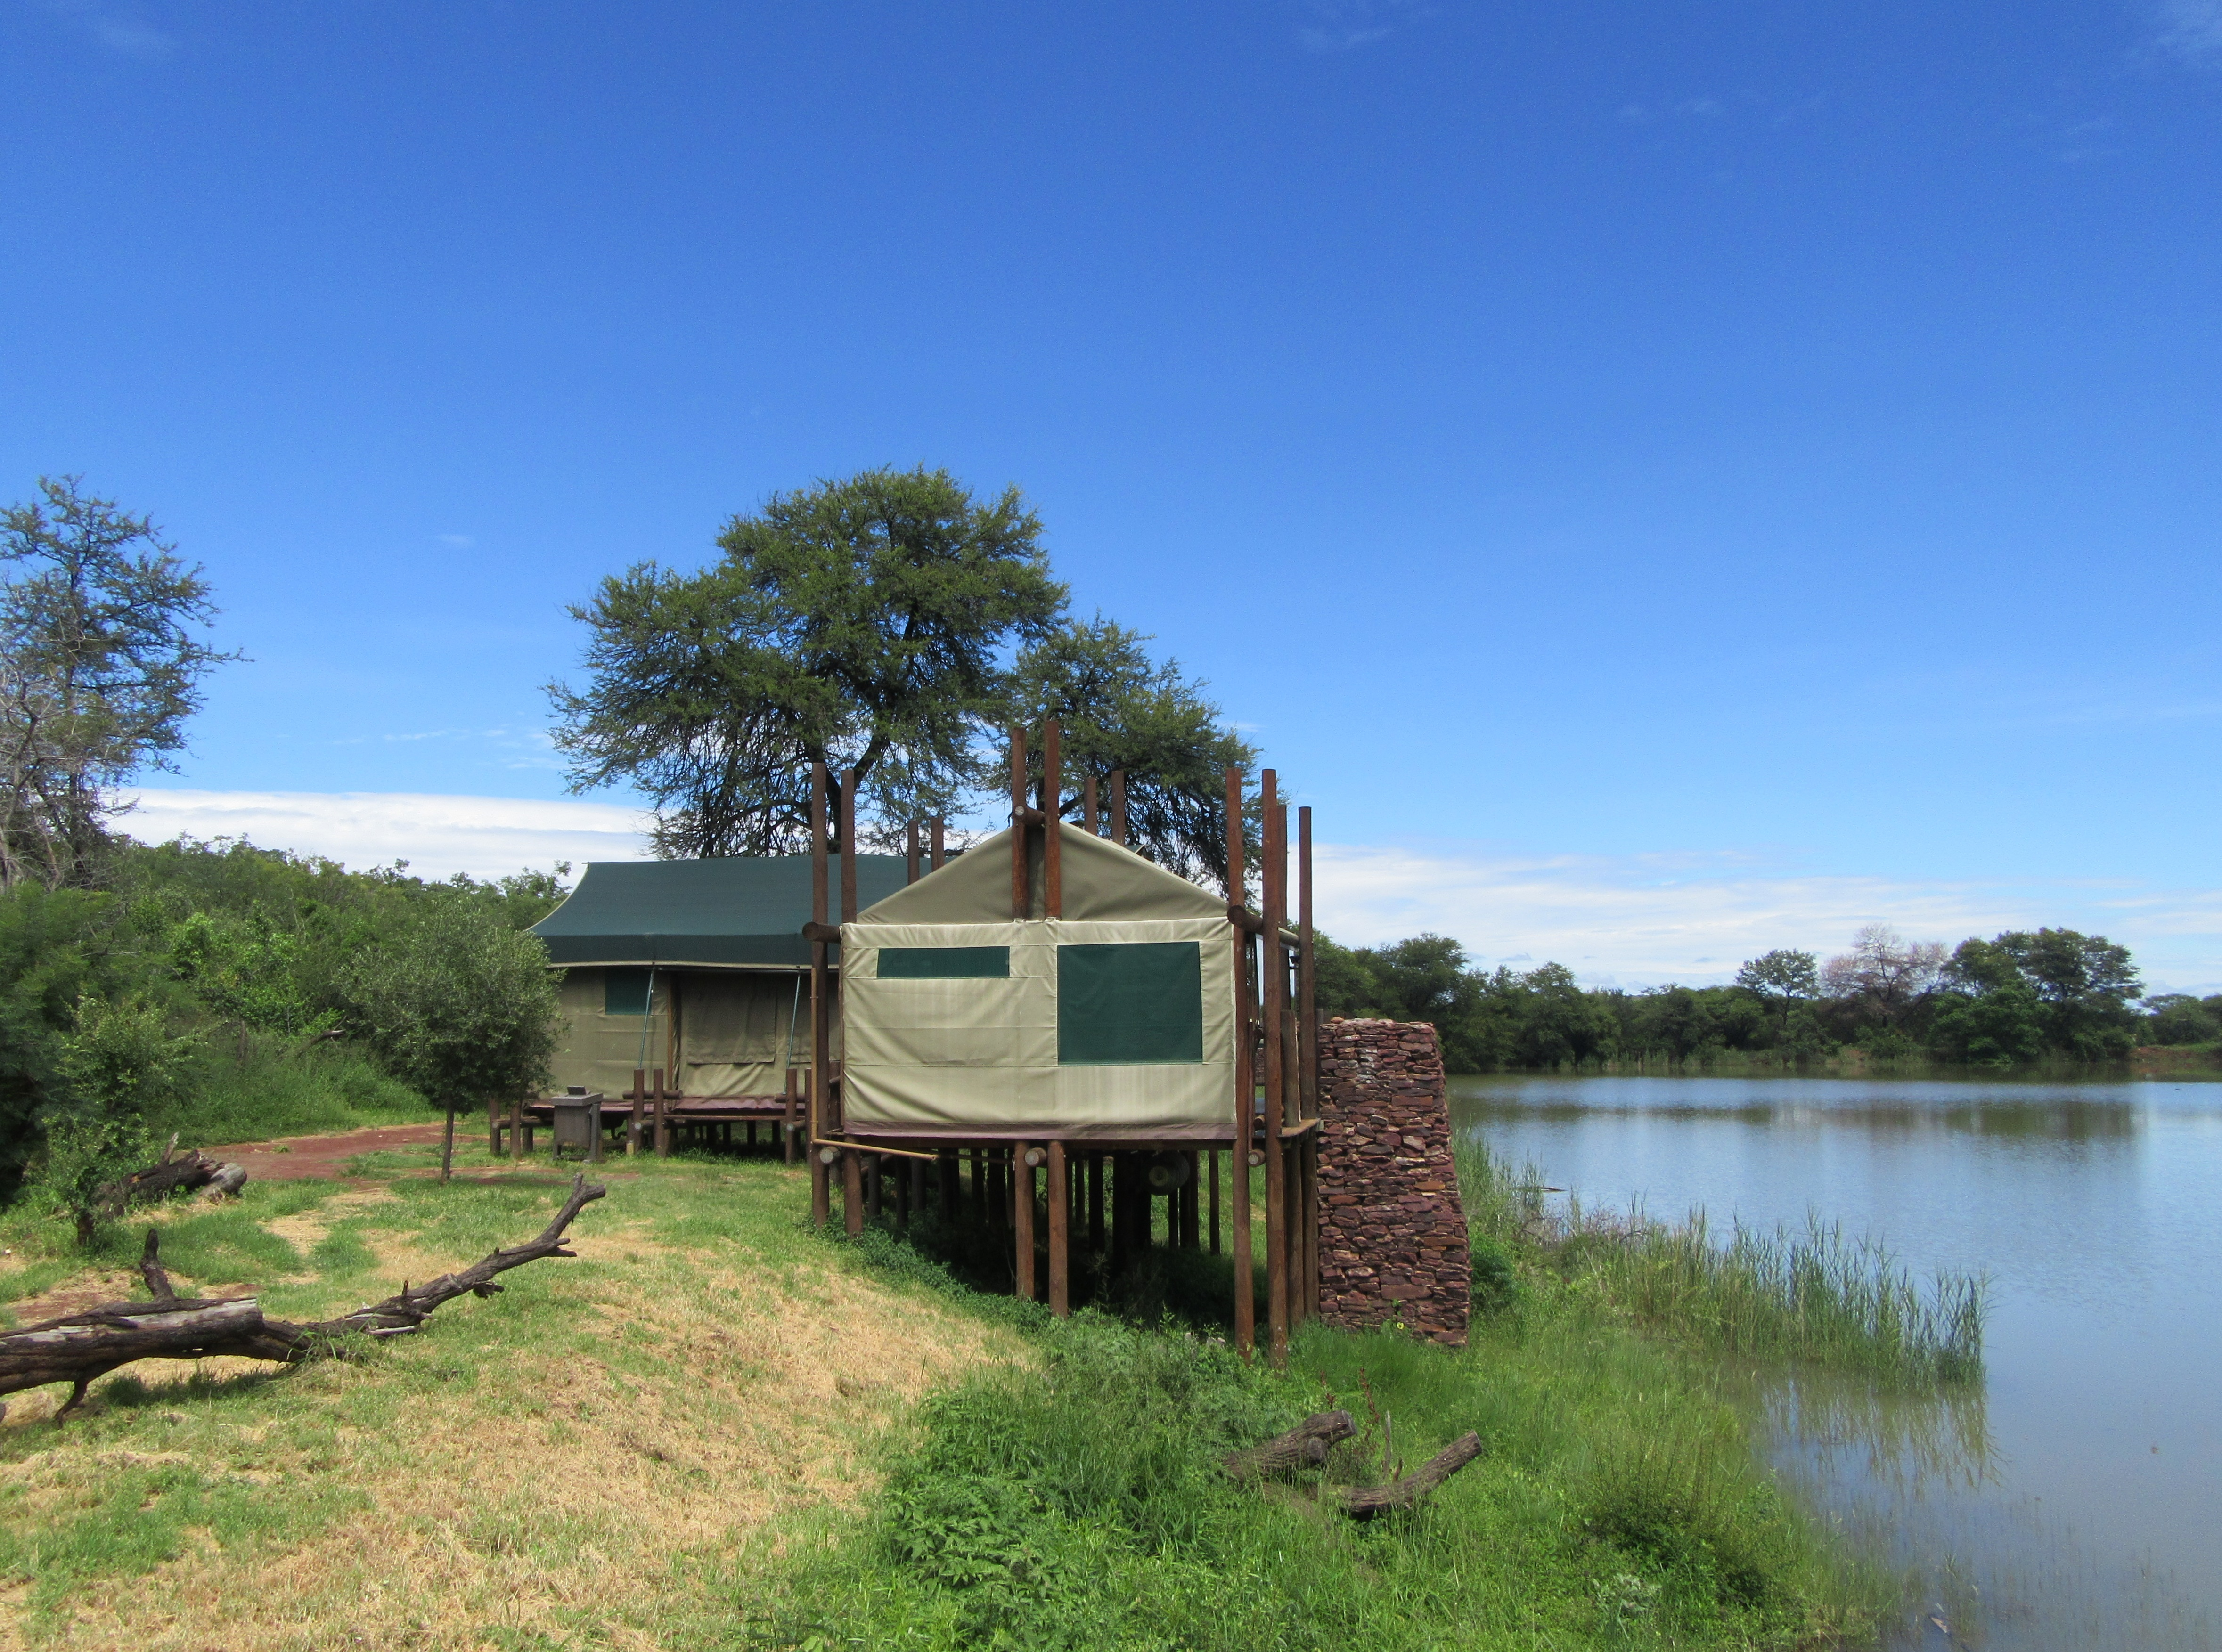 Safari Tent Tlopi Tented Camp Marakele South Africa